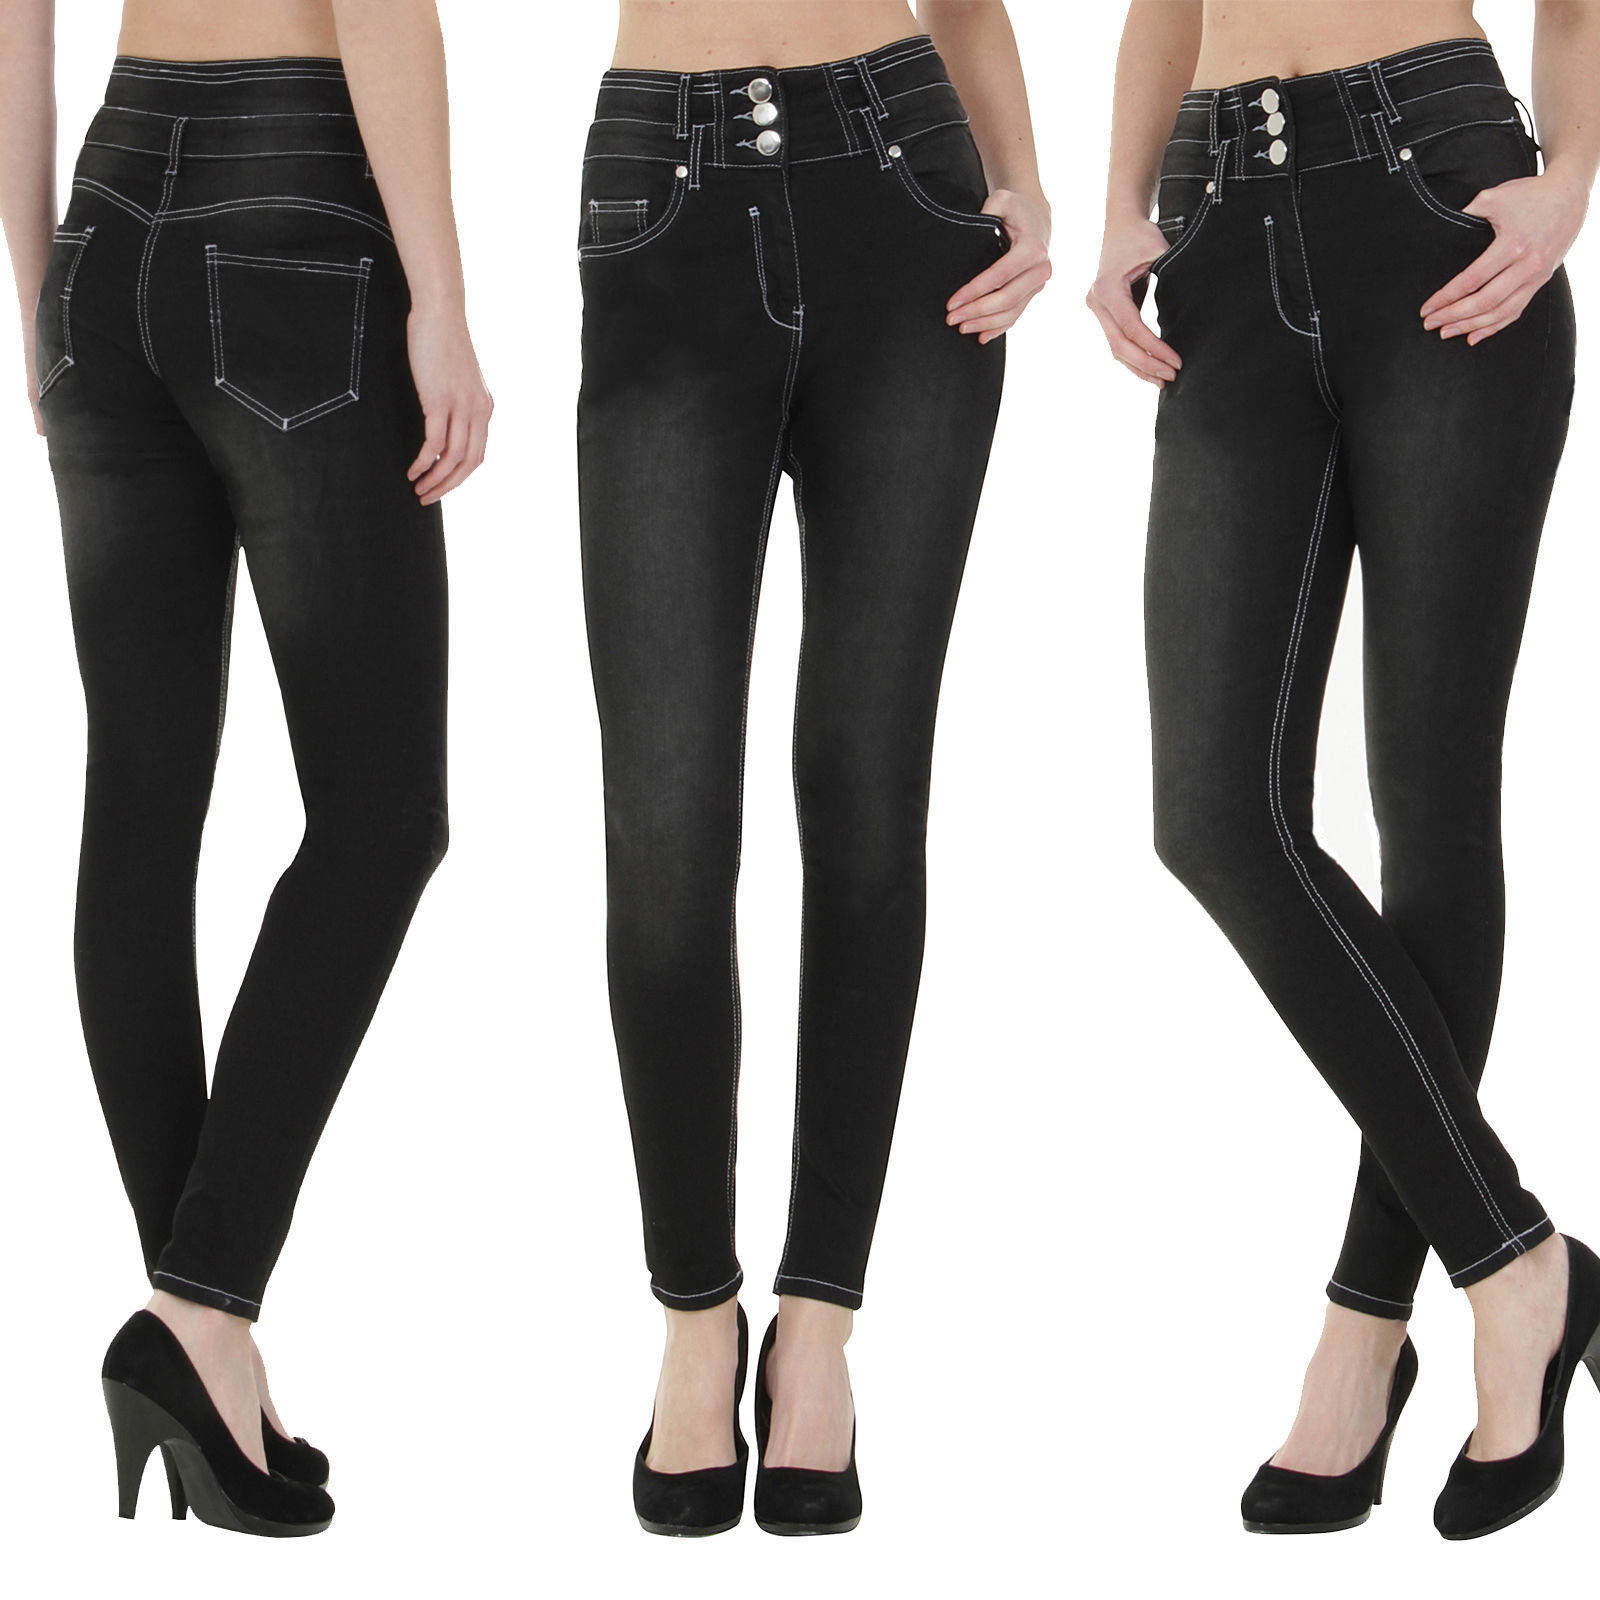 High Waisted Stretch Pencil Jeans Women Solid Color Button Fly Pocket Mom Jean Pants Female Soft Vintage Skinny Denim Trousers